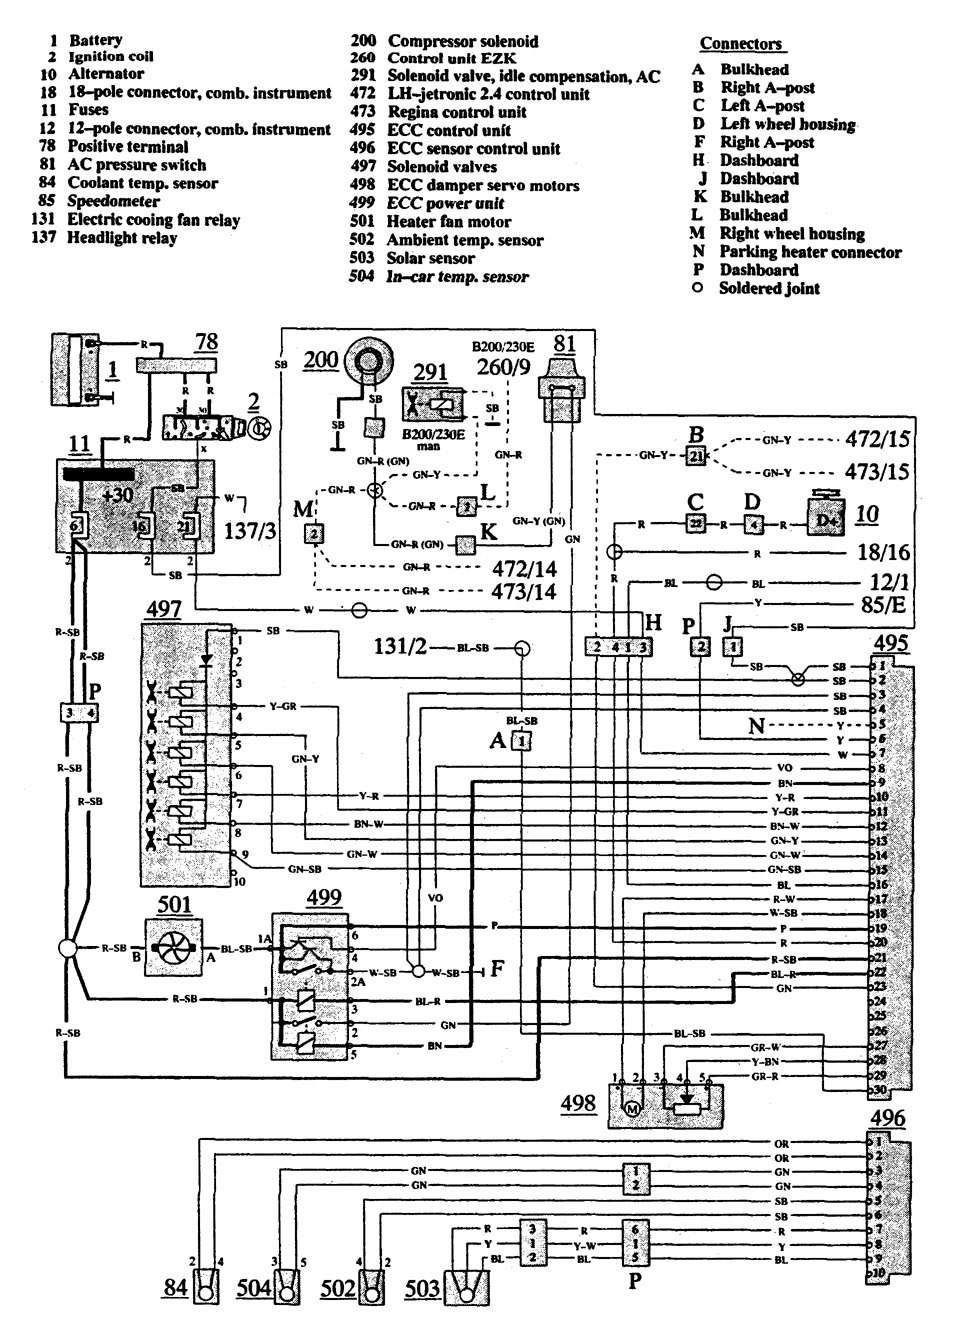 1985 Volvo Wiring Diagram Chevrolet Wiring Diagrams Radio For Wiring Diagram Schematics